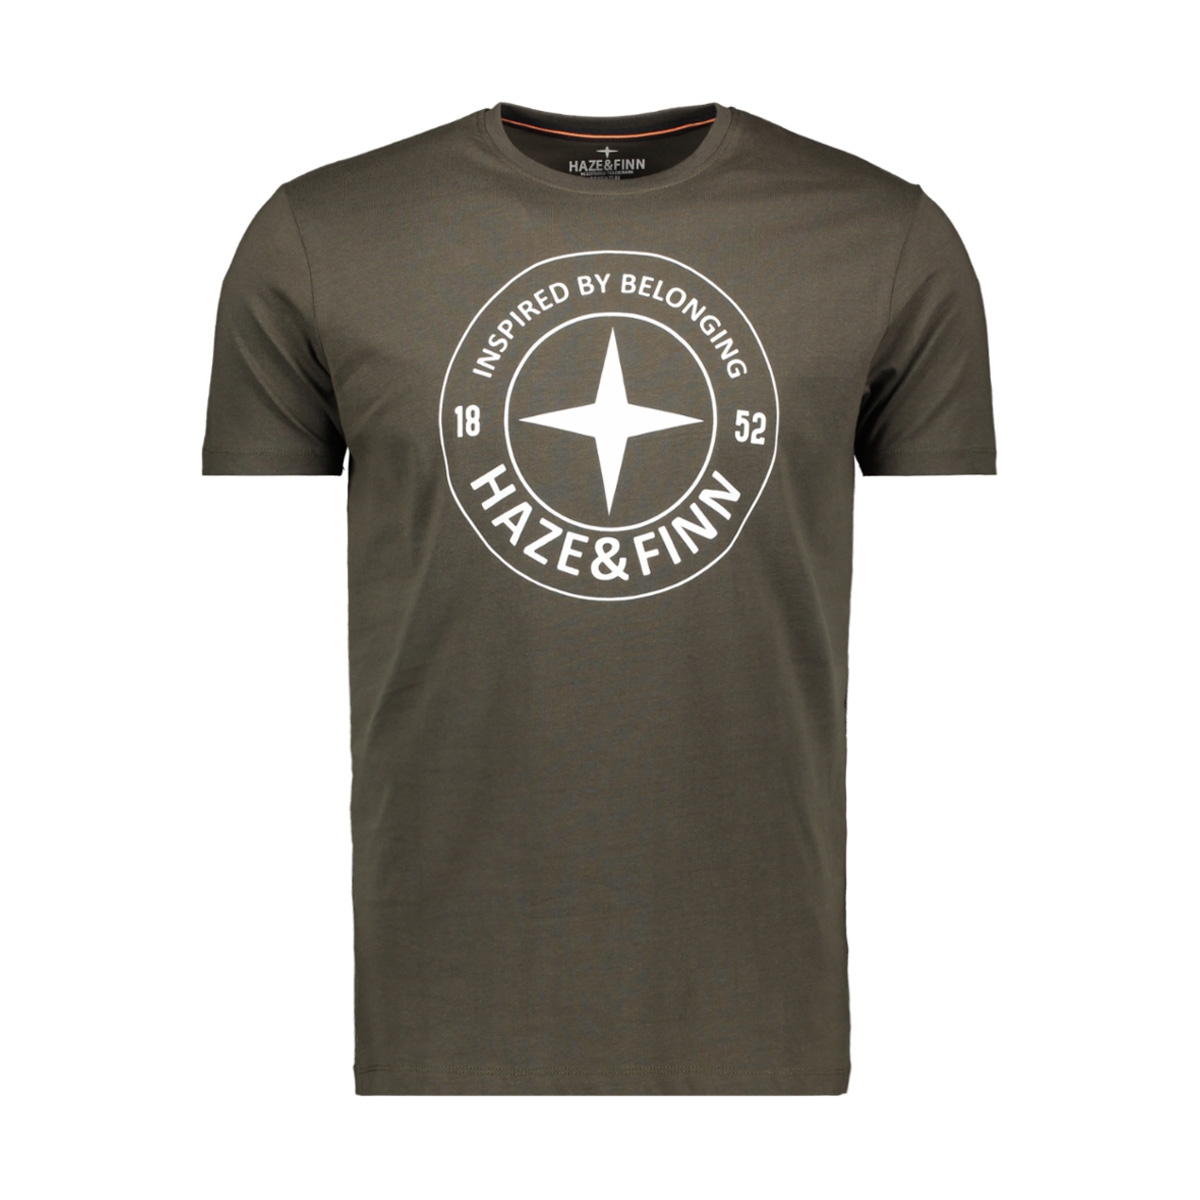 tee logo circle me 0018 haze & finn t-shirt khaki/army green